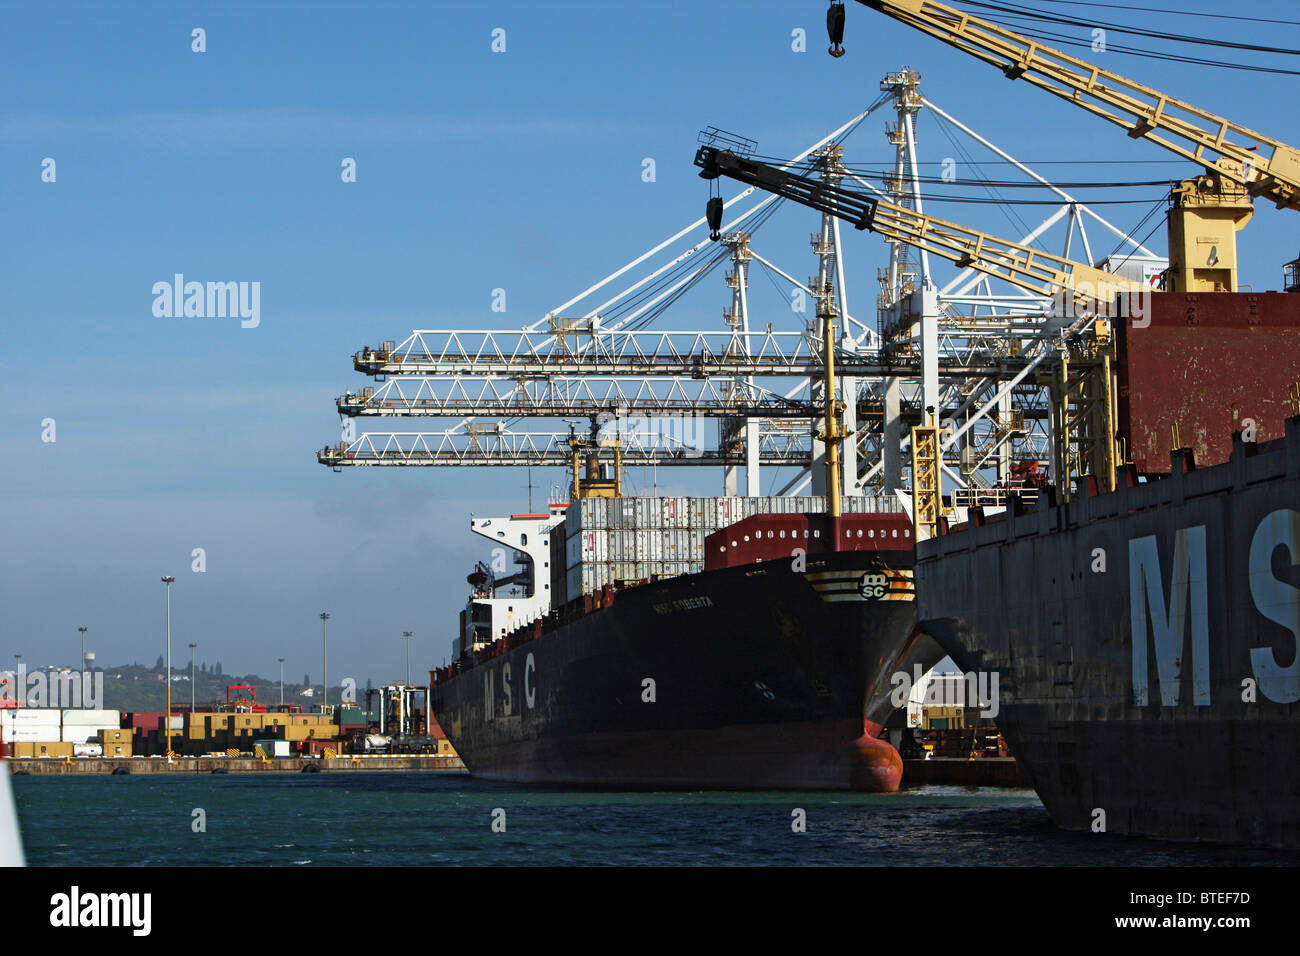 Ships and cranes anchored at Durban harbour - Stock Image